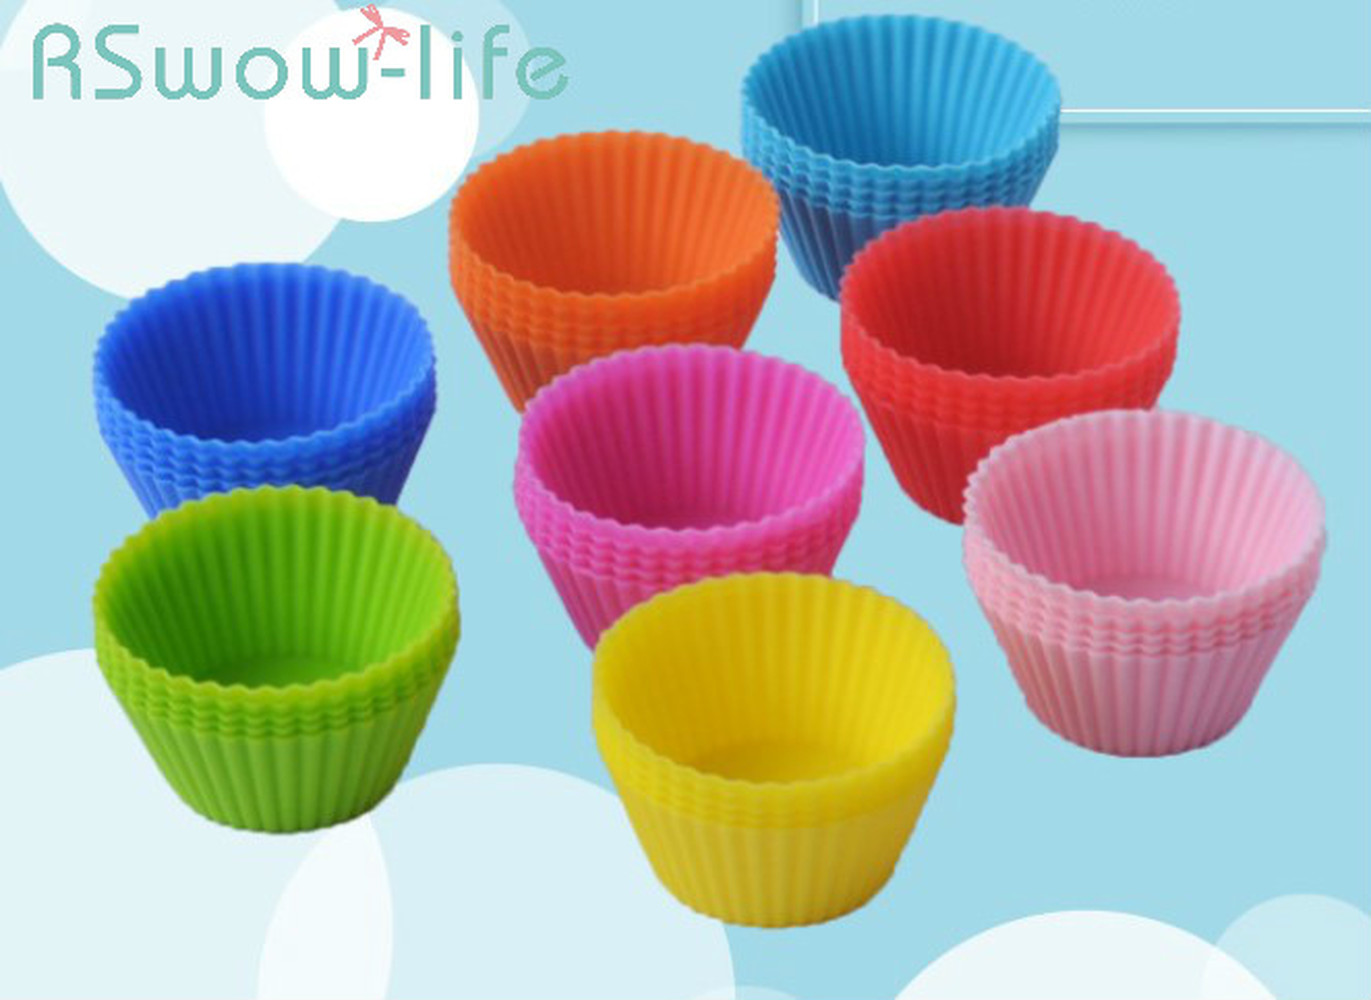 10 Pcs Silicone Baking Accessories Muffin Cup Round 7cm Cake Mold For Tools Cakes